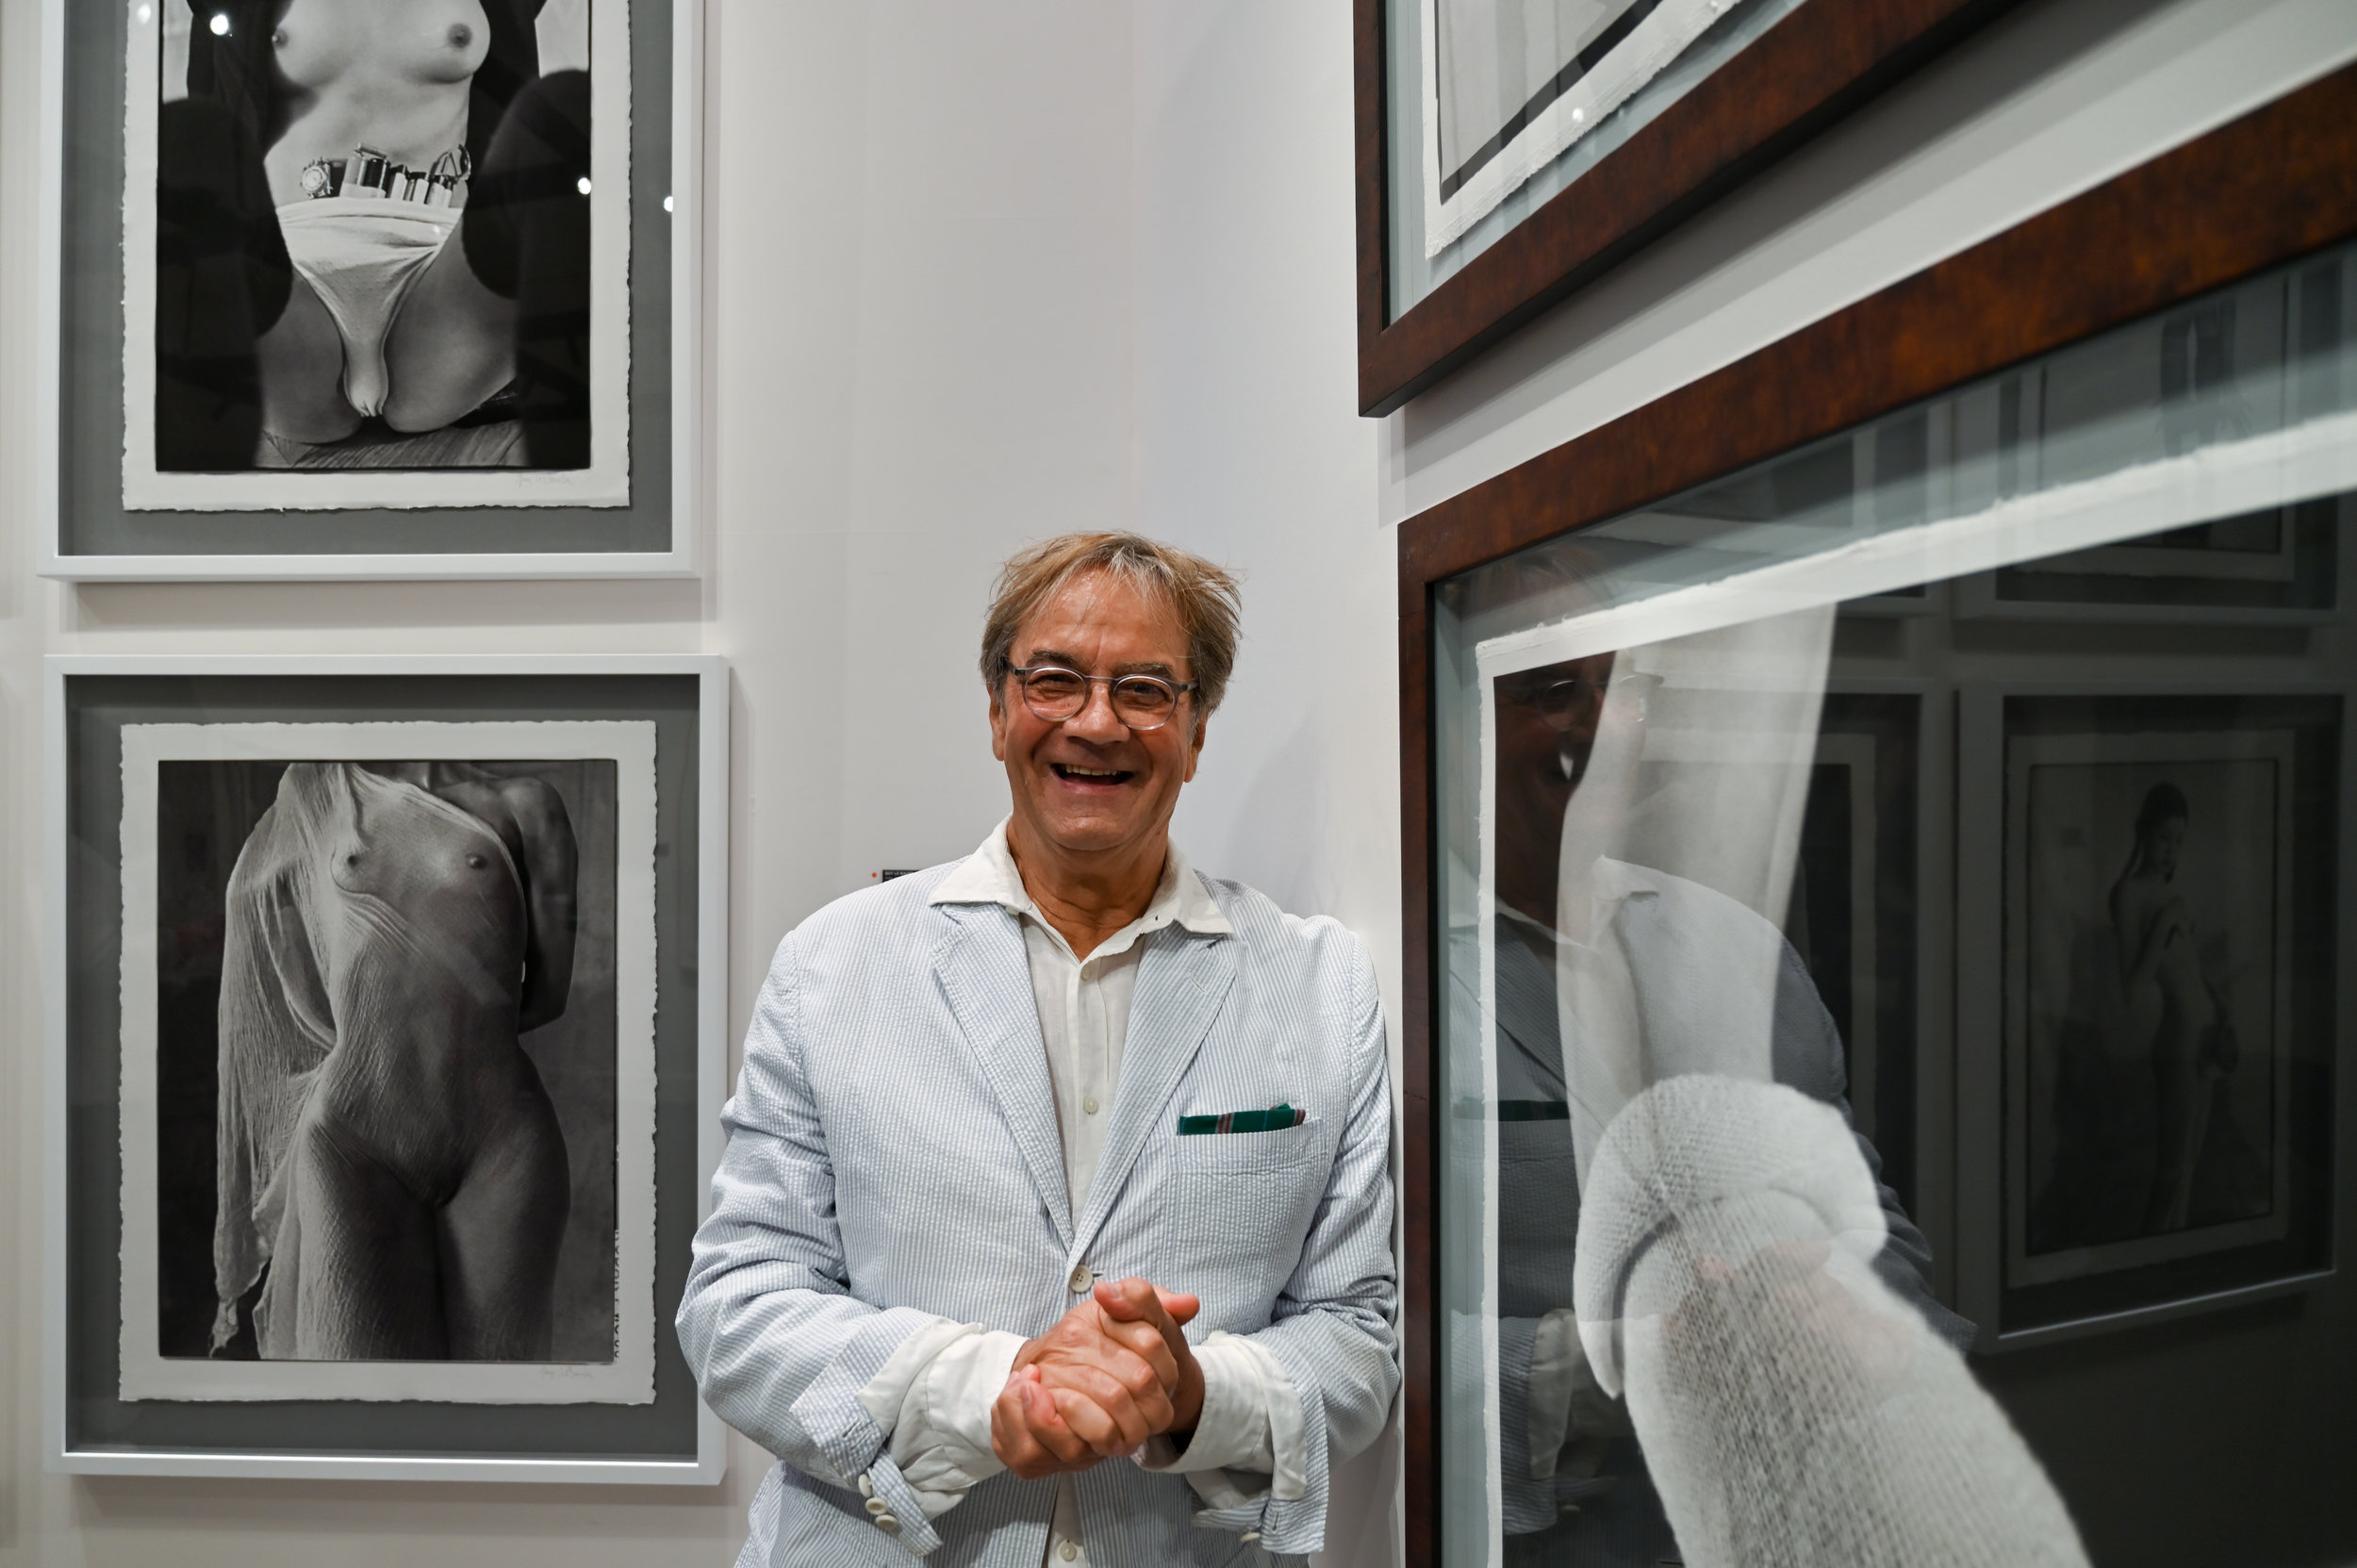 Guy Le Baube and his photographs. © Federica Belli